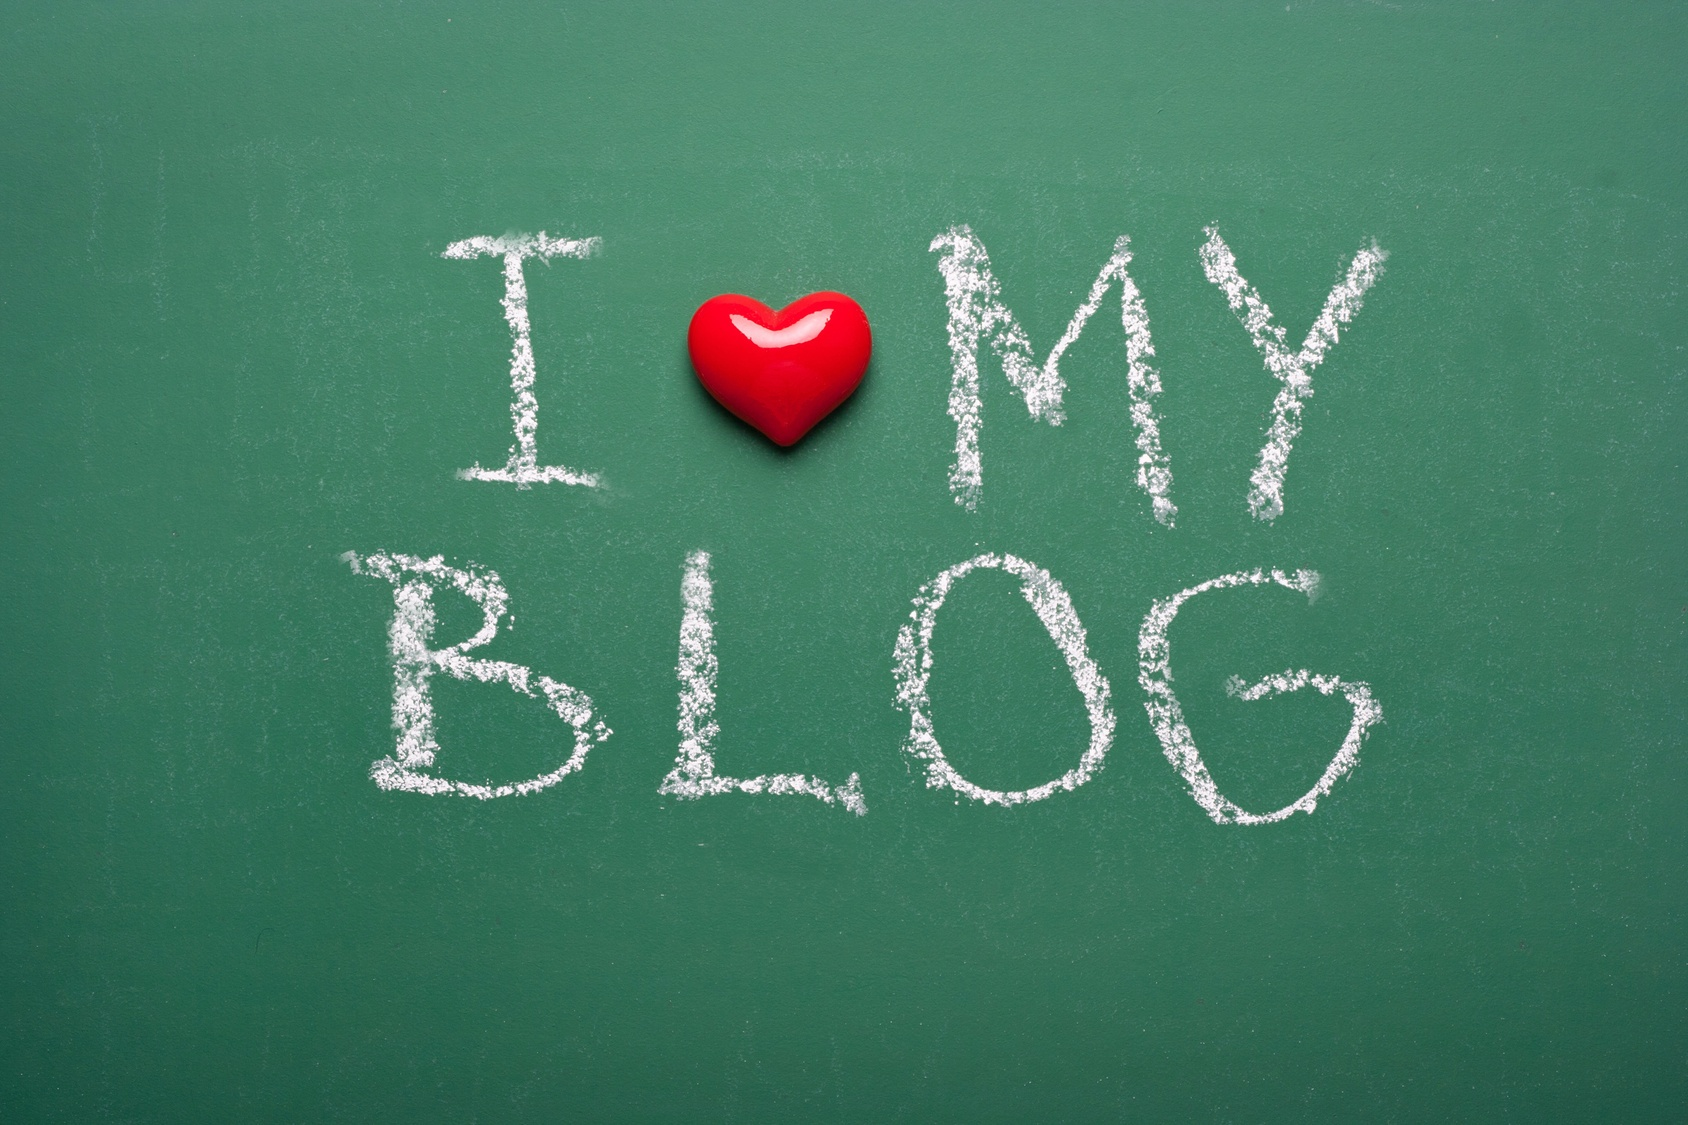 If you love your blog, you'll want to make sure that everyone can see it.